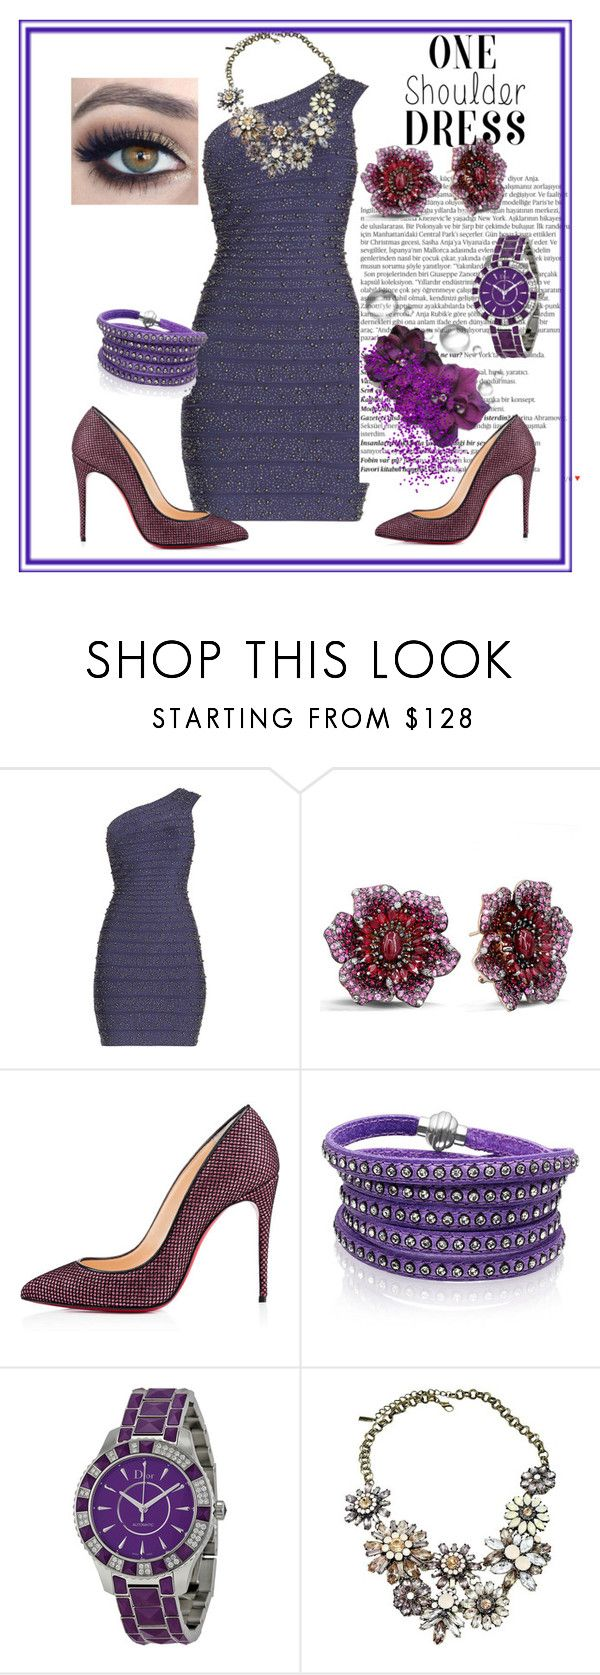 """""""One shoulder dress """" by daisyarias7 ❤ liked on Polyvore featuring Hervé Léger, Balmain, Effy Jewelry, Christian Louboutin, Sif Jakobs Jewellery, Christian Dior and BaubleBar"""